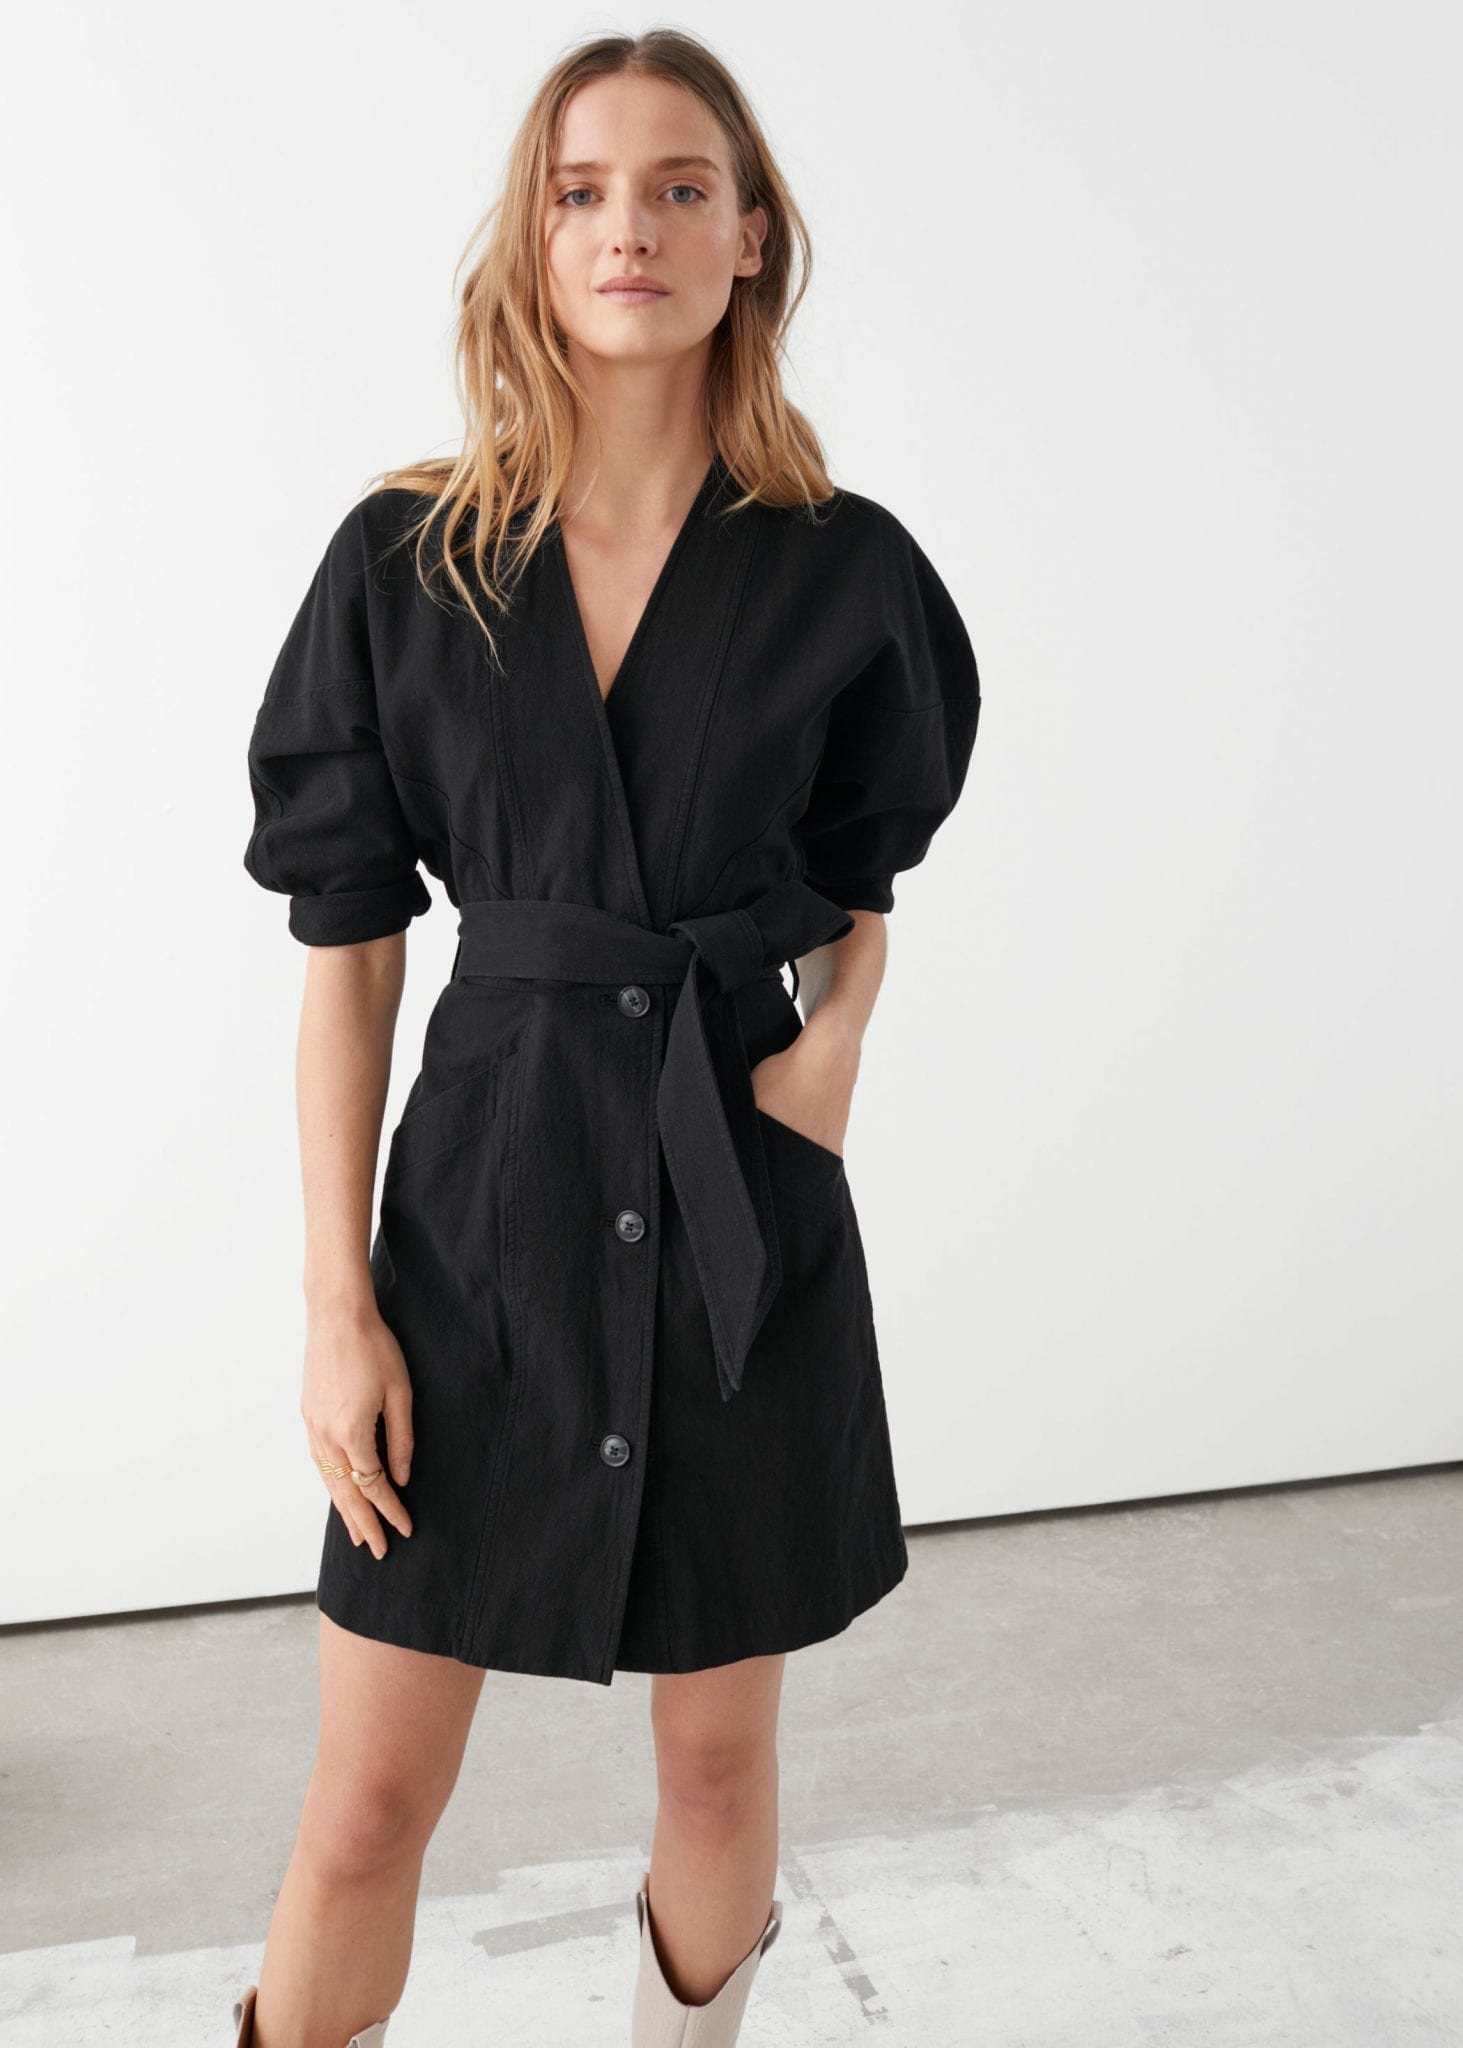 AND OTHER STORIES Double Breasted Puff Sleeve Mini Dress